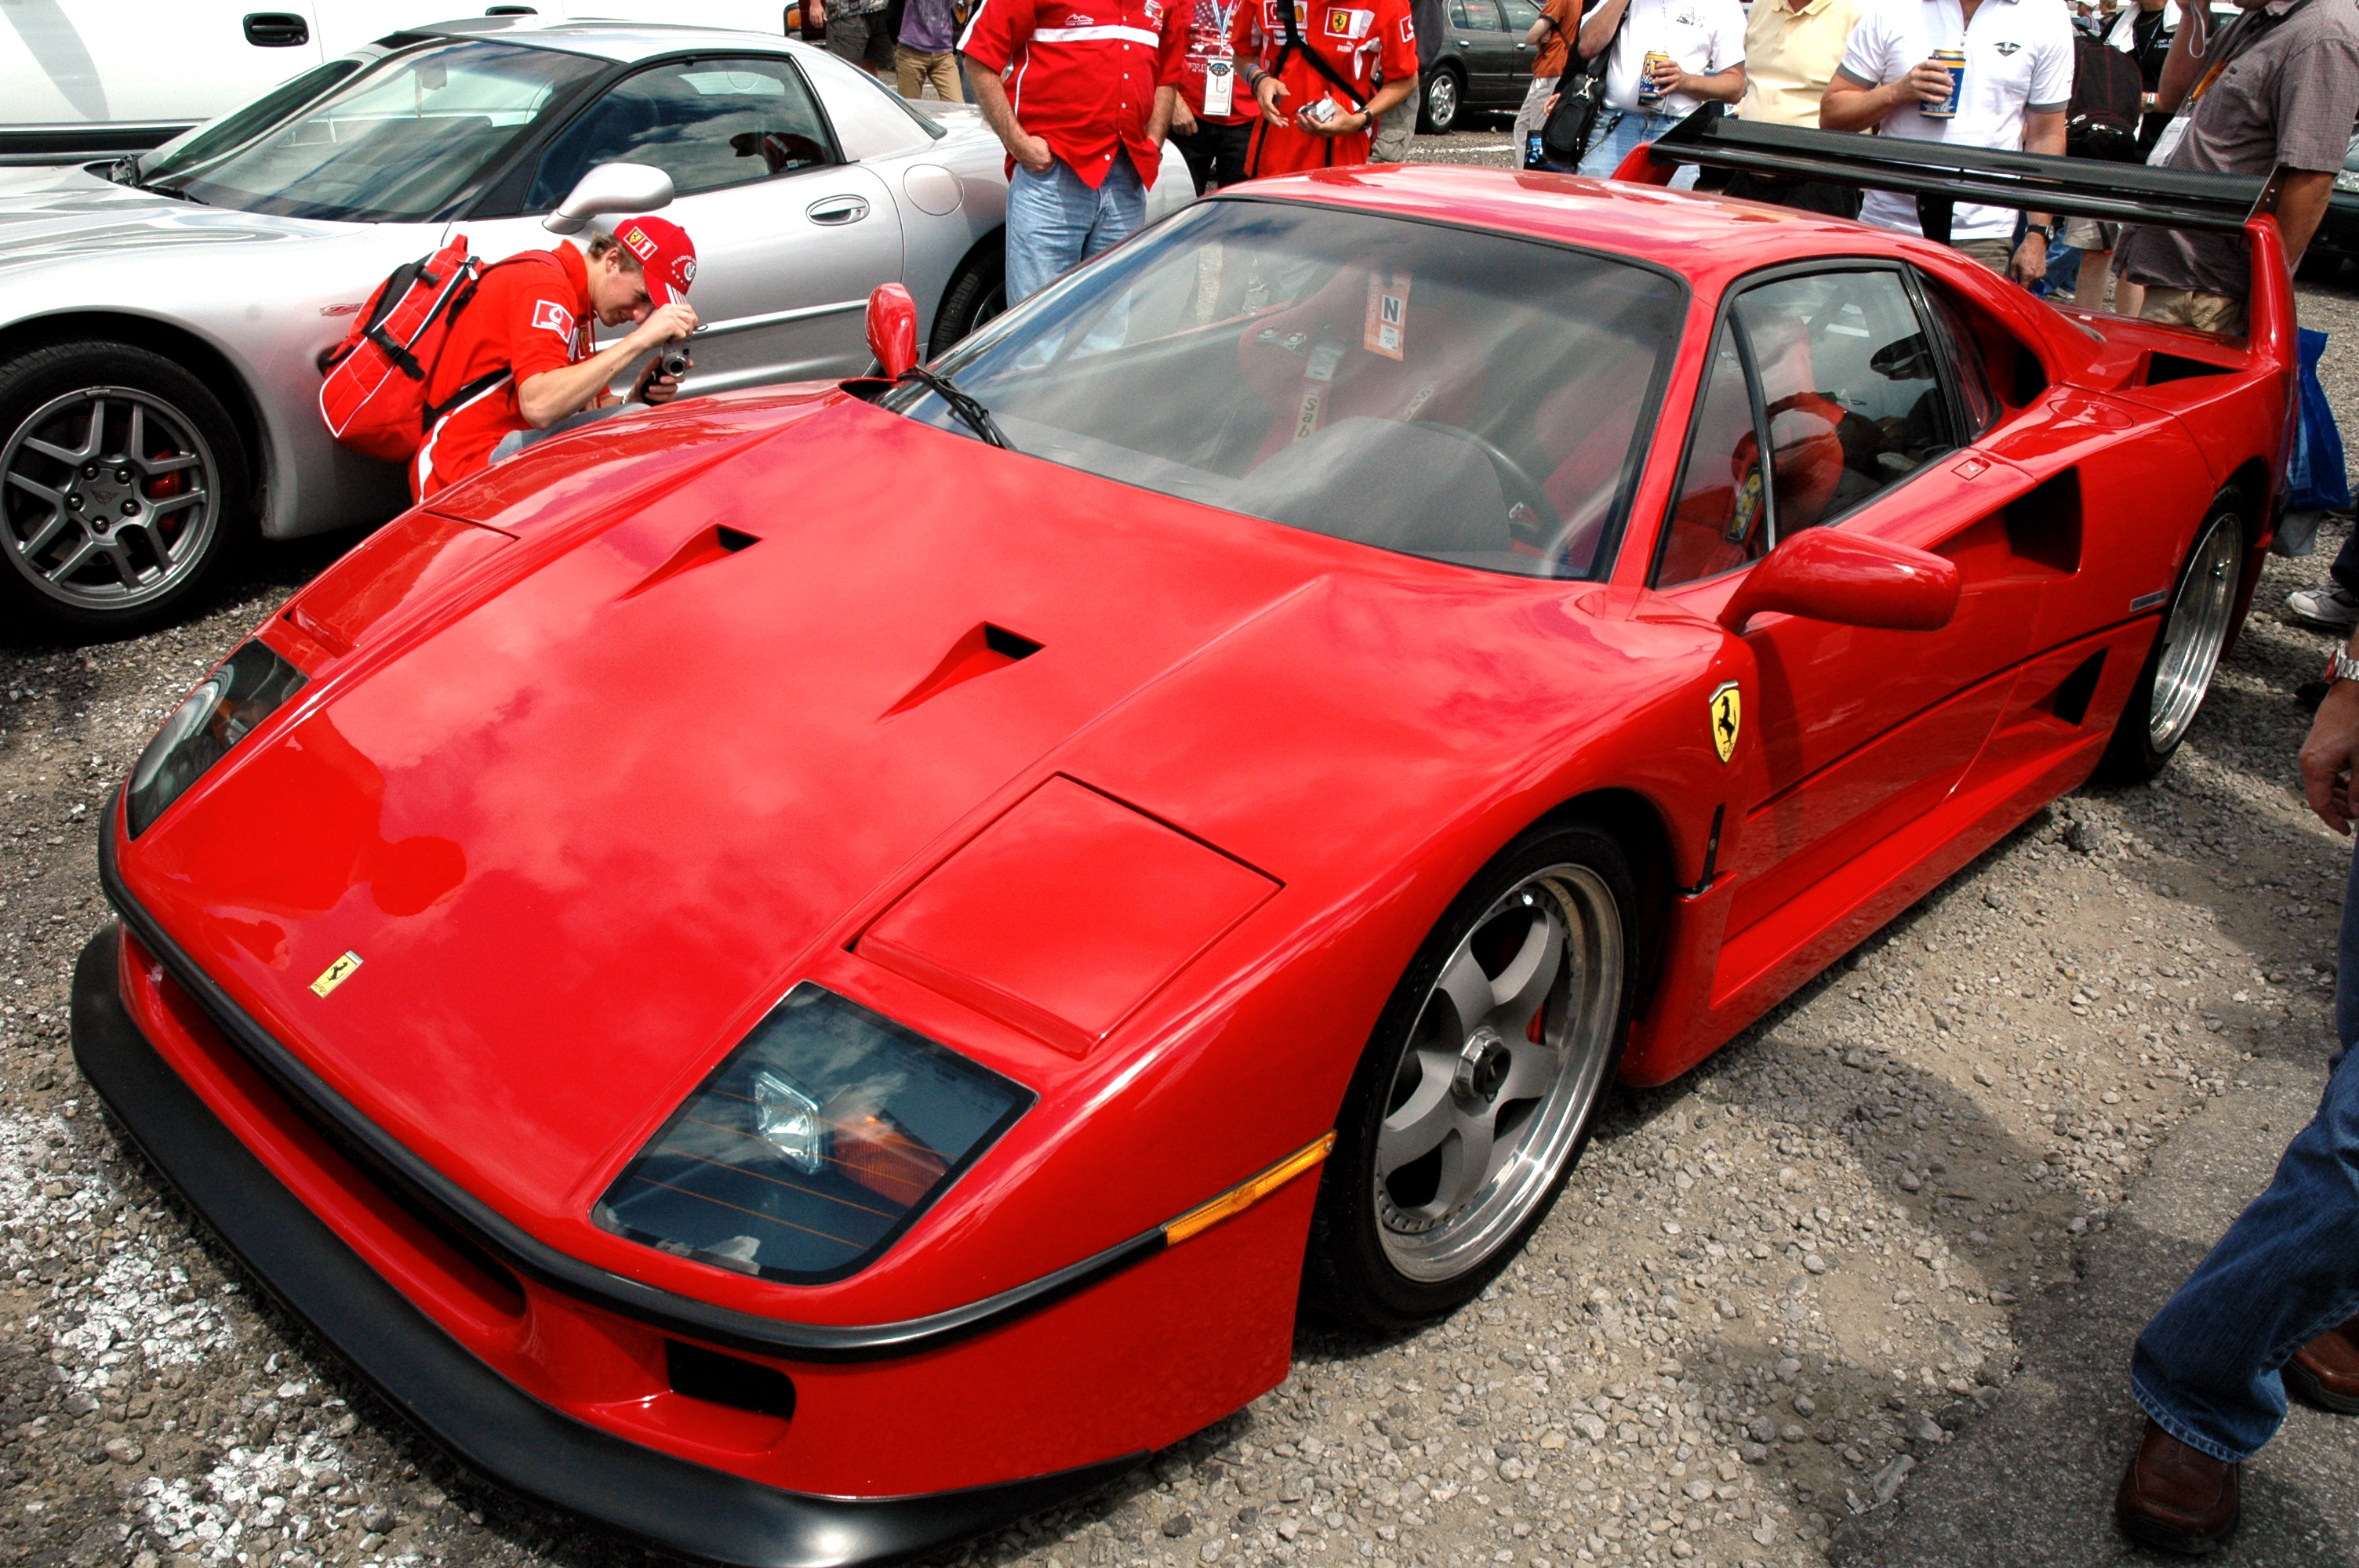 file ferrari f40 in ims parking wikimedia commons. Black Bedroom Furniture Sets. Home Design Ideas